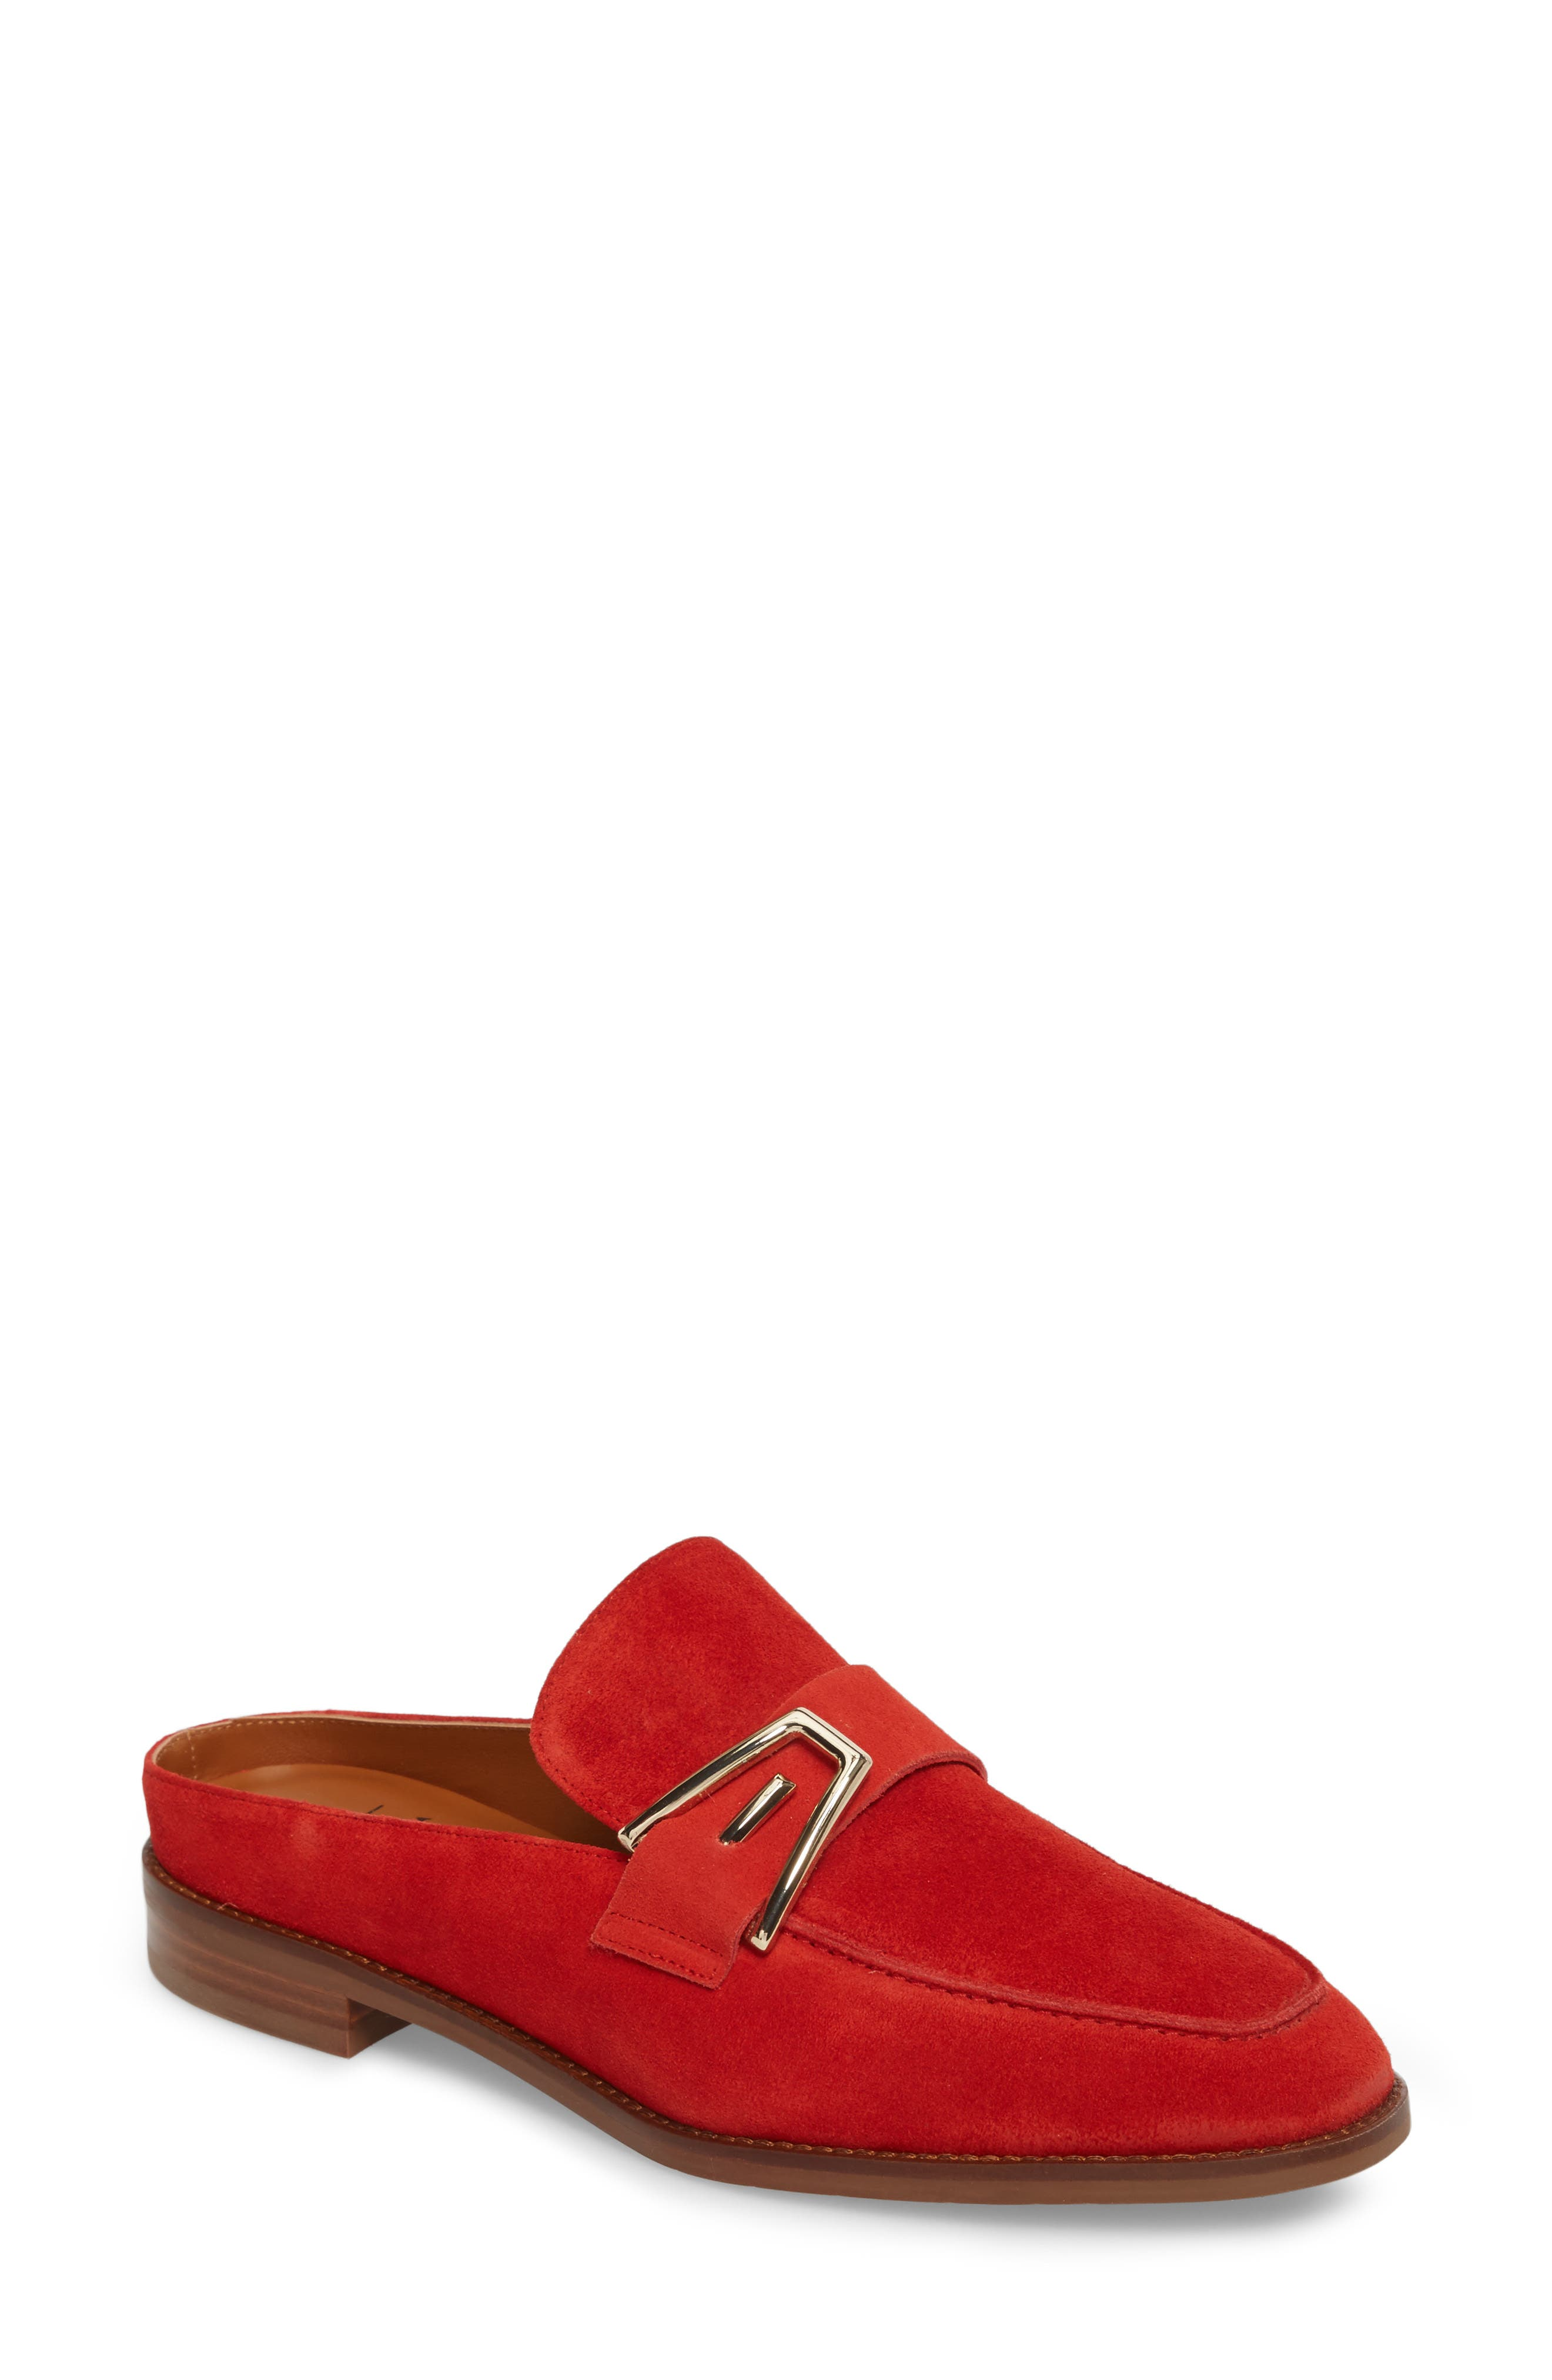 Tosca Loafer Mule,                             Main thumbnail 2, color,